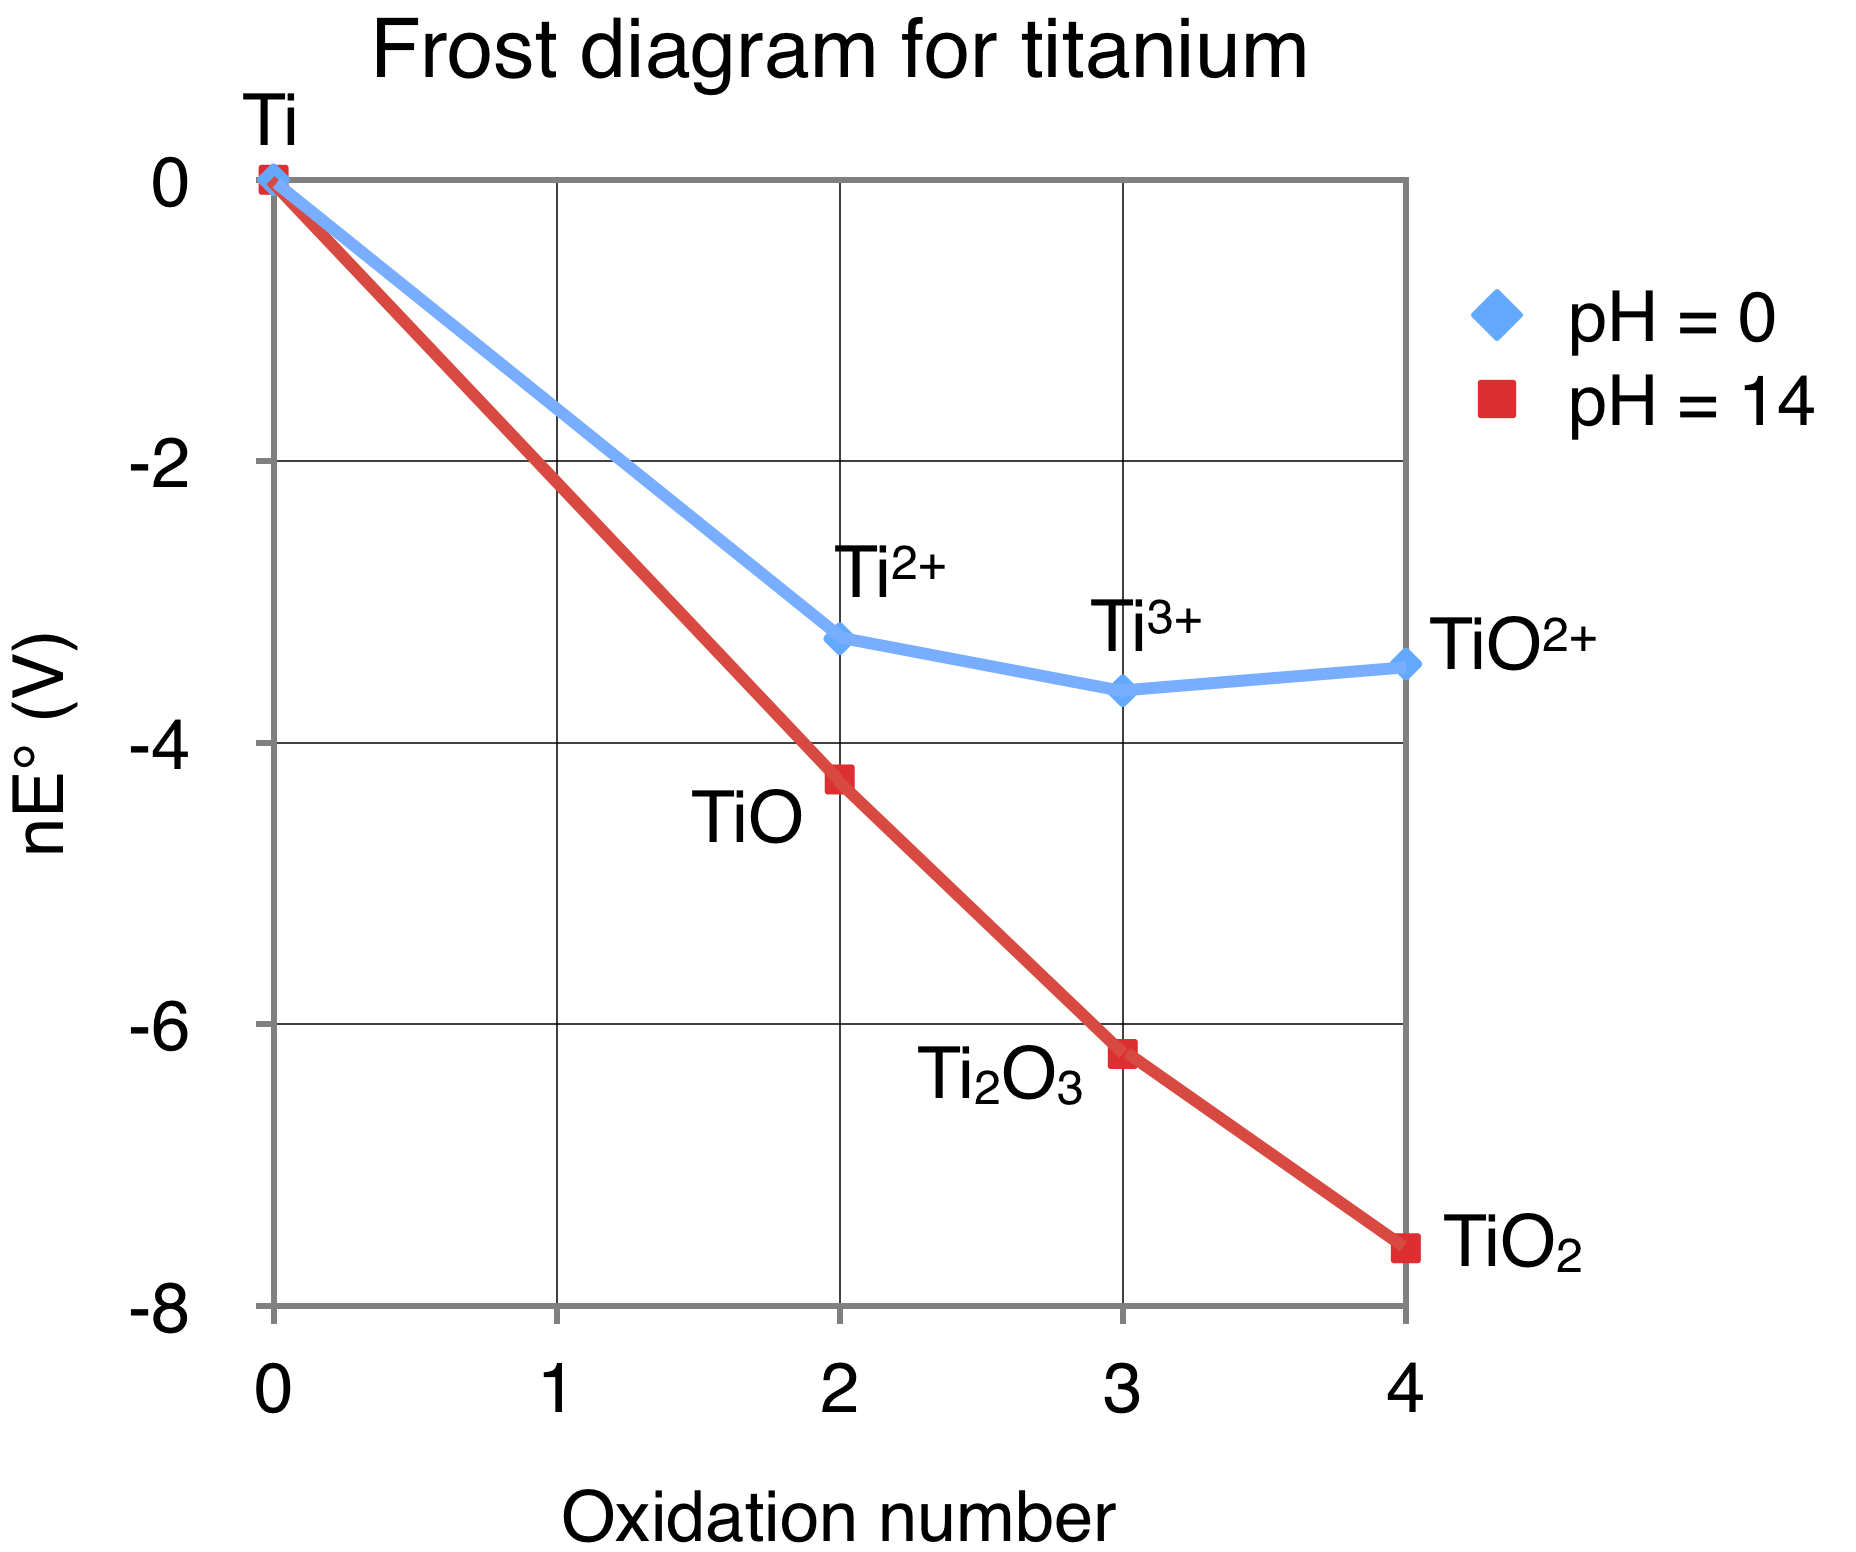 hight resolution of file frost diagram for titanium png wikimedia commons physical description of titanium file frost diagram for